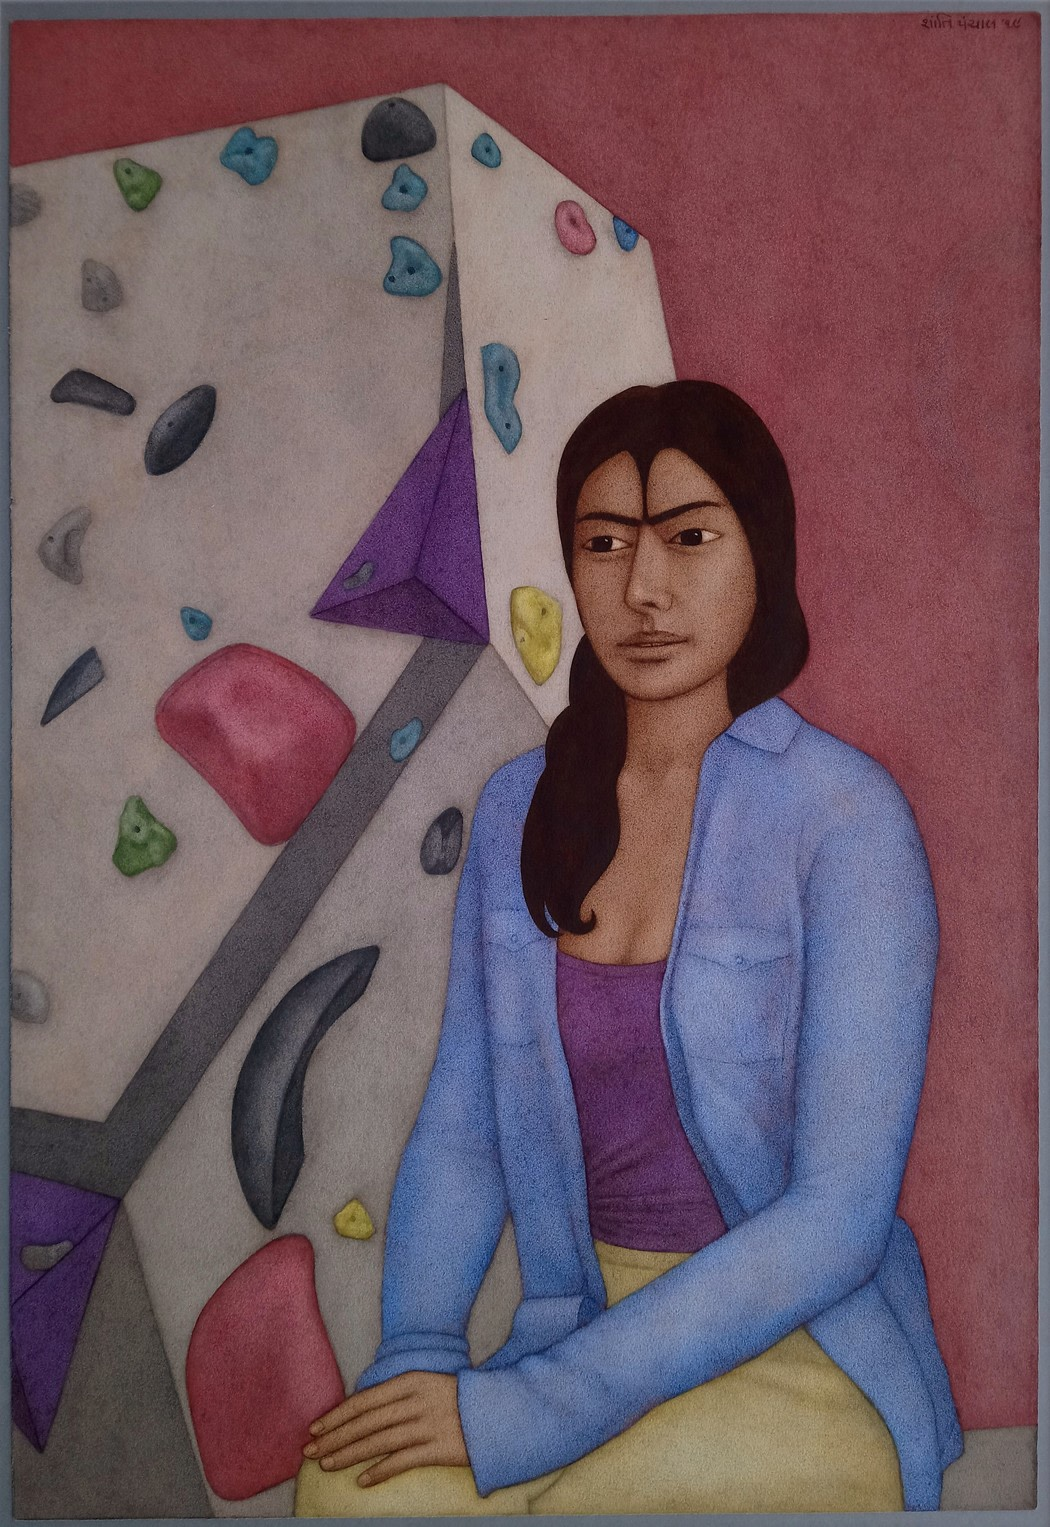 """<span class=""""link fancybox-details-link""""><a href=""""/artists/157-shanti-panchal/works/12337-shanti-panchal-hwa-in-s-moon-2019/"""">View Detail Page</a></span><div class=""""artist""""><span class=""""artist""""><strong>Shanti Panchal</strong></span></div><div class=""""title""""><em>Hwa In's Moon 2019</em></div><div class=""""medium"""">watercolour</div><div class=""""dimensions"""">Frame: 84 x 62cm<br /> Artwork: 66 x 46cm</div><div class=""""price"""">£6,700.00</div>"""